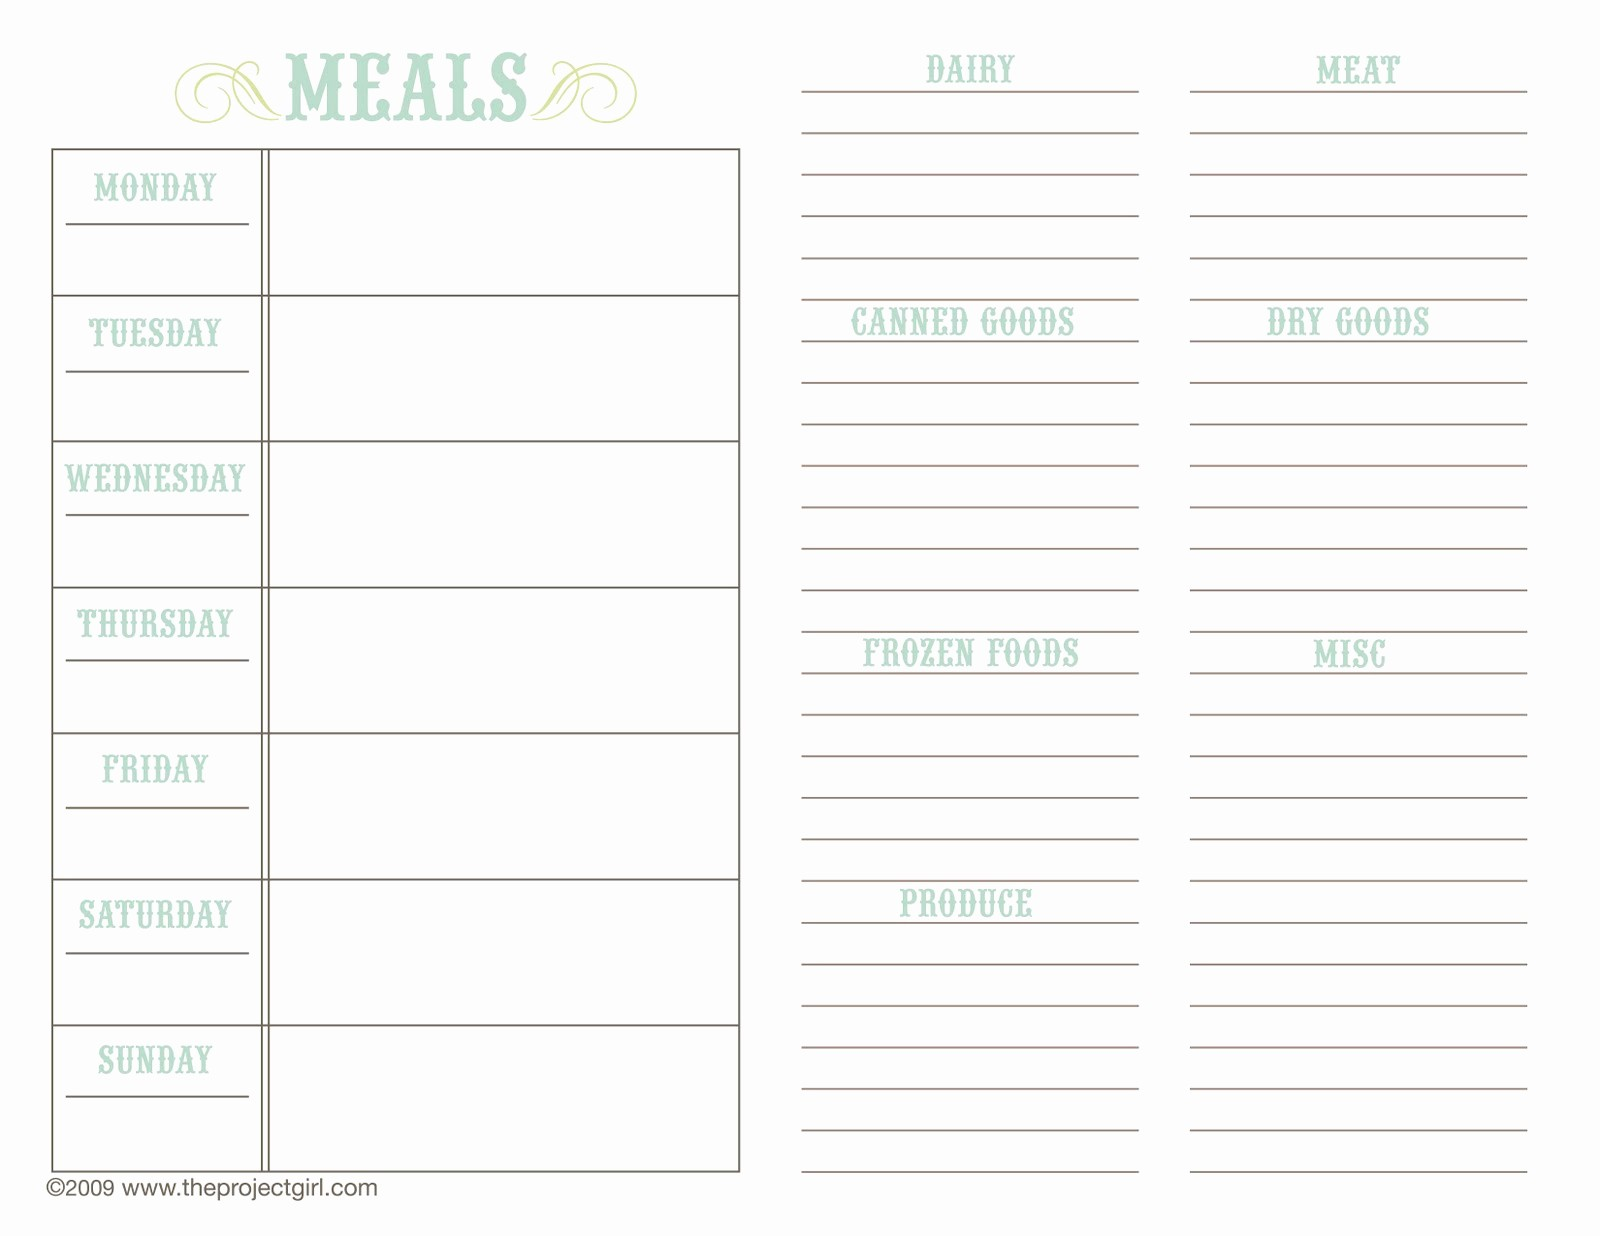 Free Meal Planner Template Download Fresh Meal Planner Template